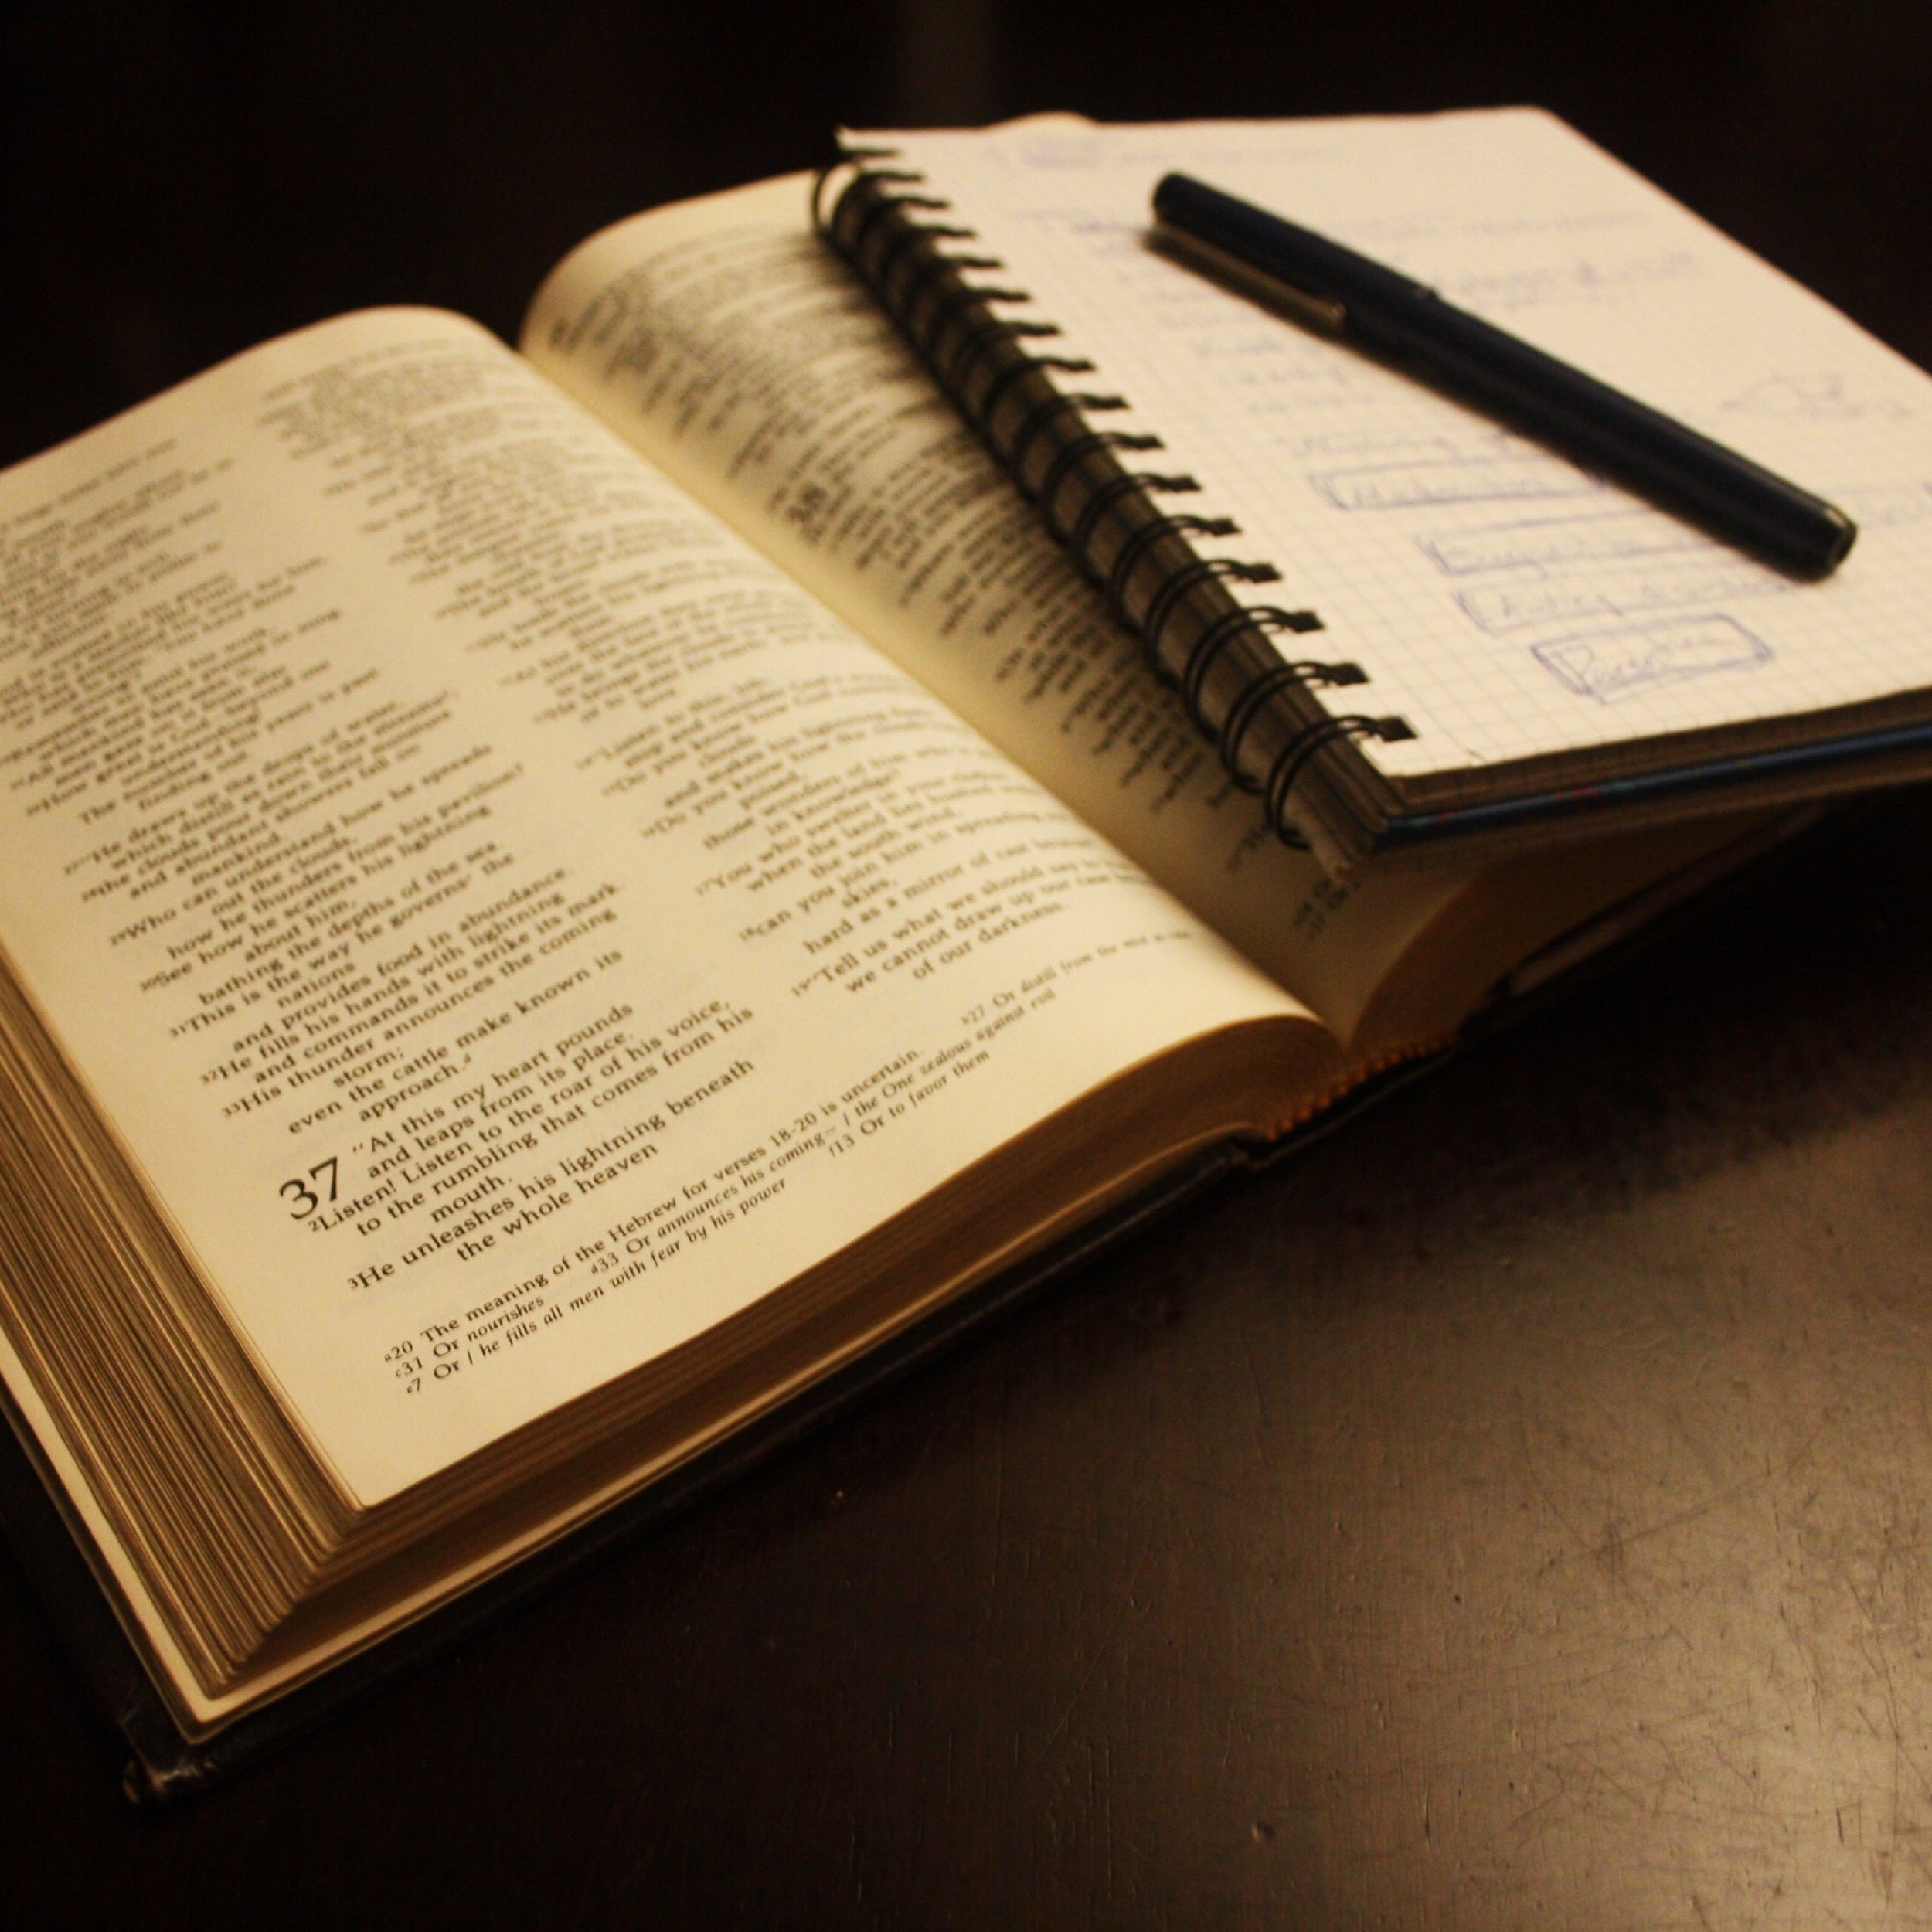 Things I Learned From Writing My Own Bible Study The Liturgy Nerd